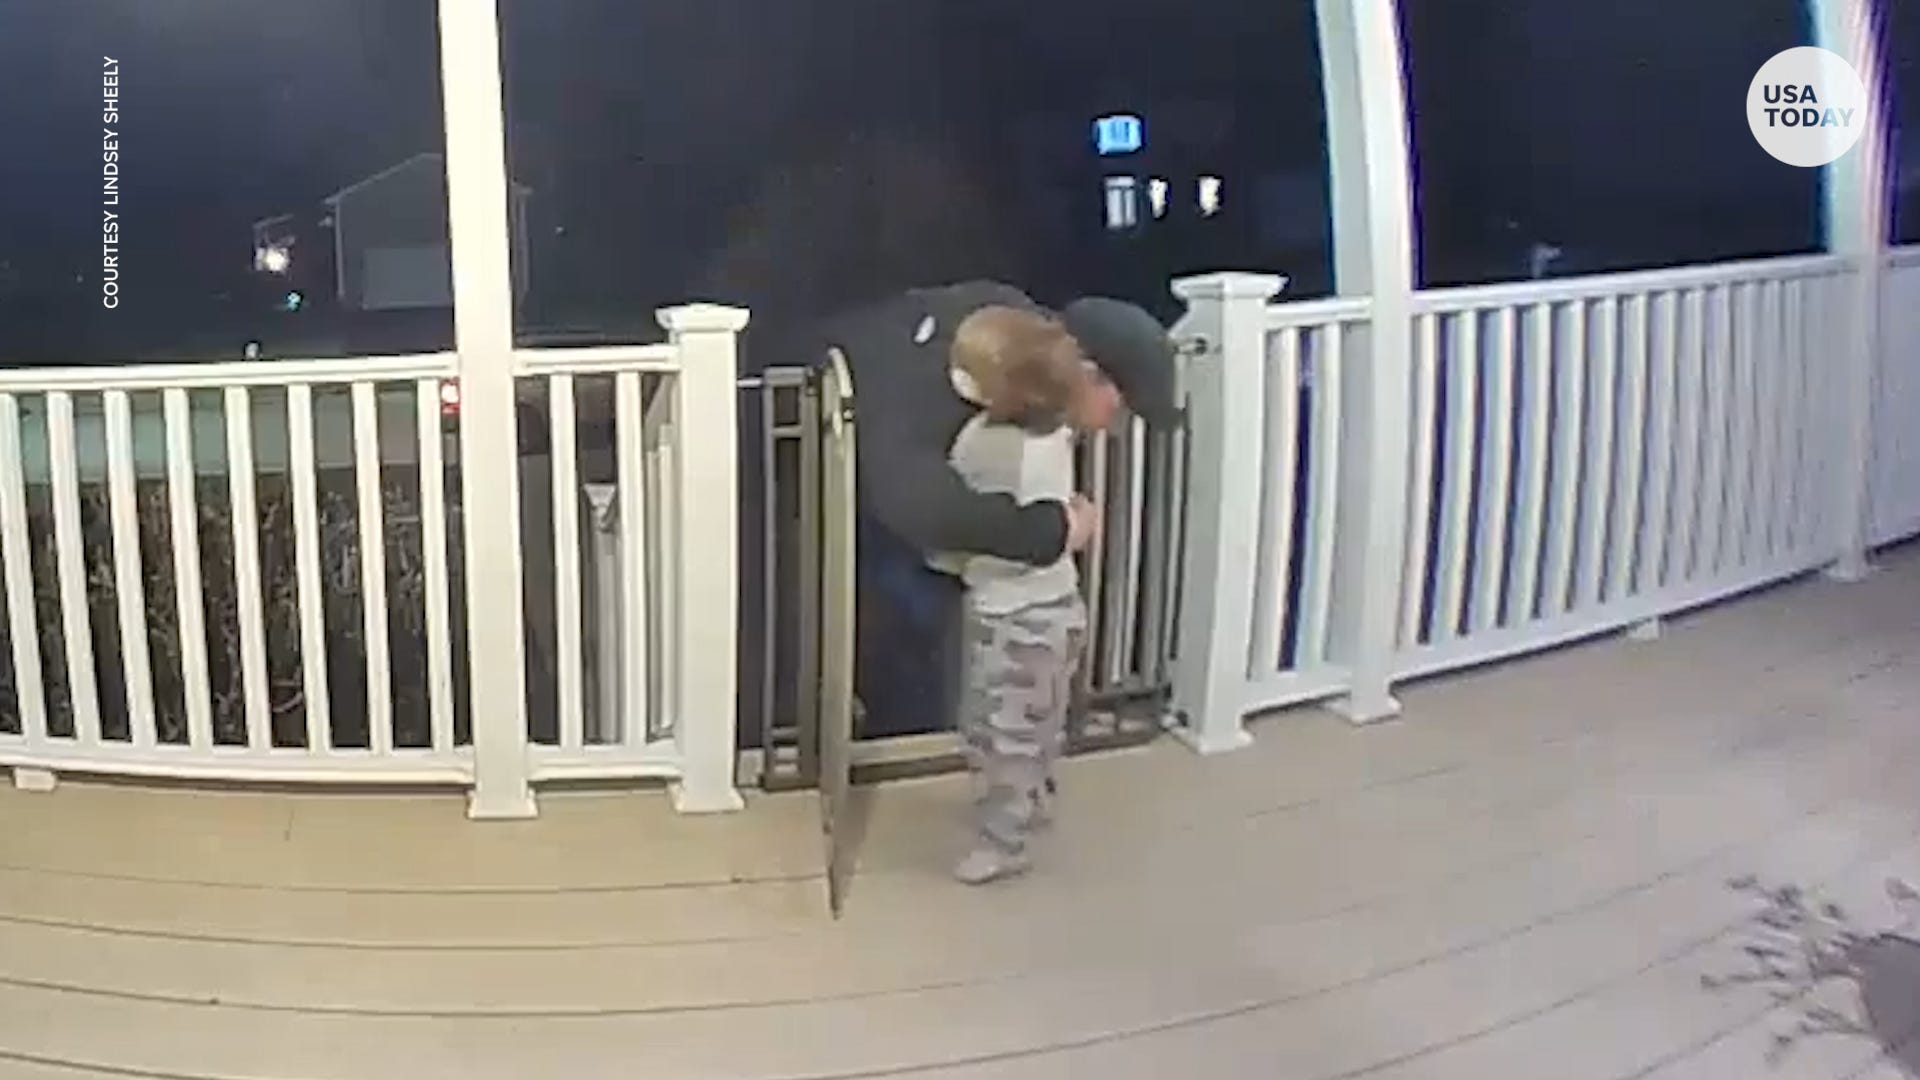 Toddler s hug to complete stranger means more than what this camera captured